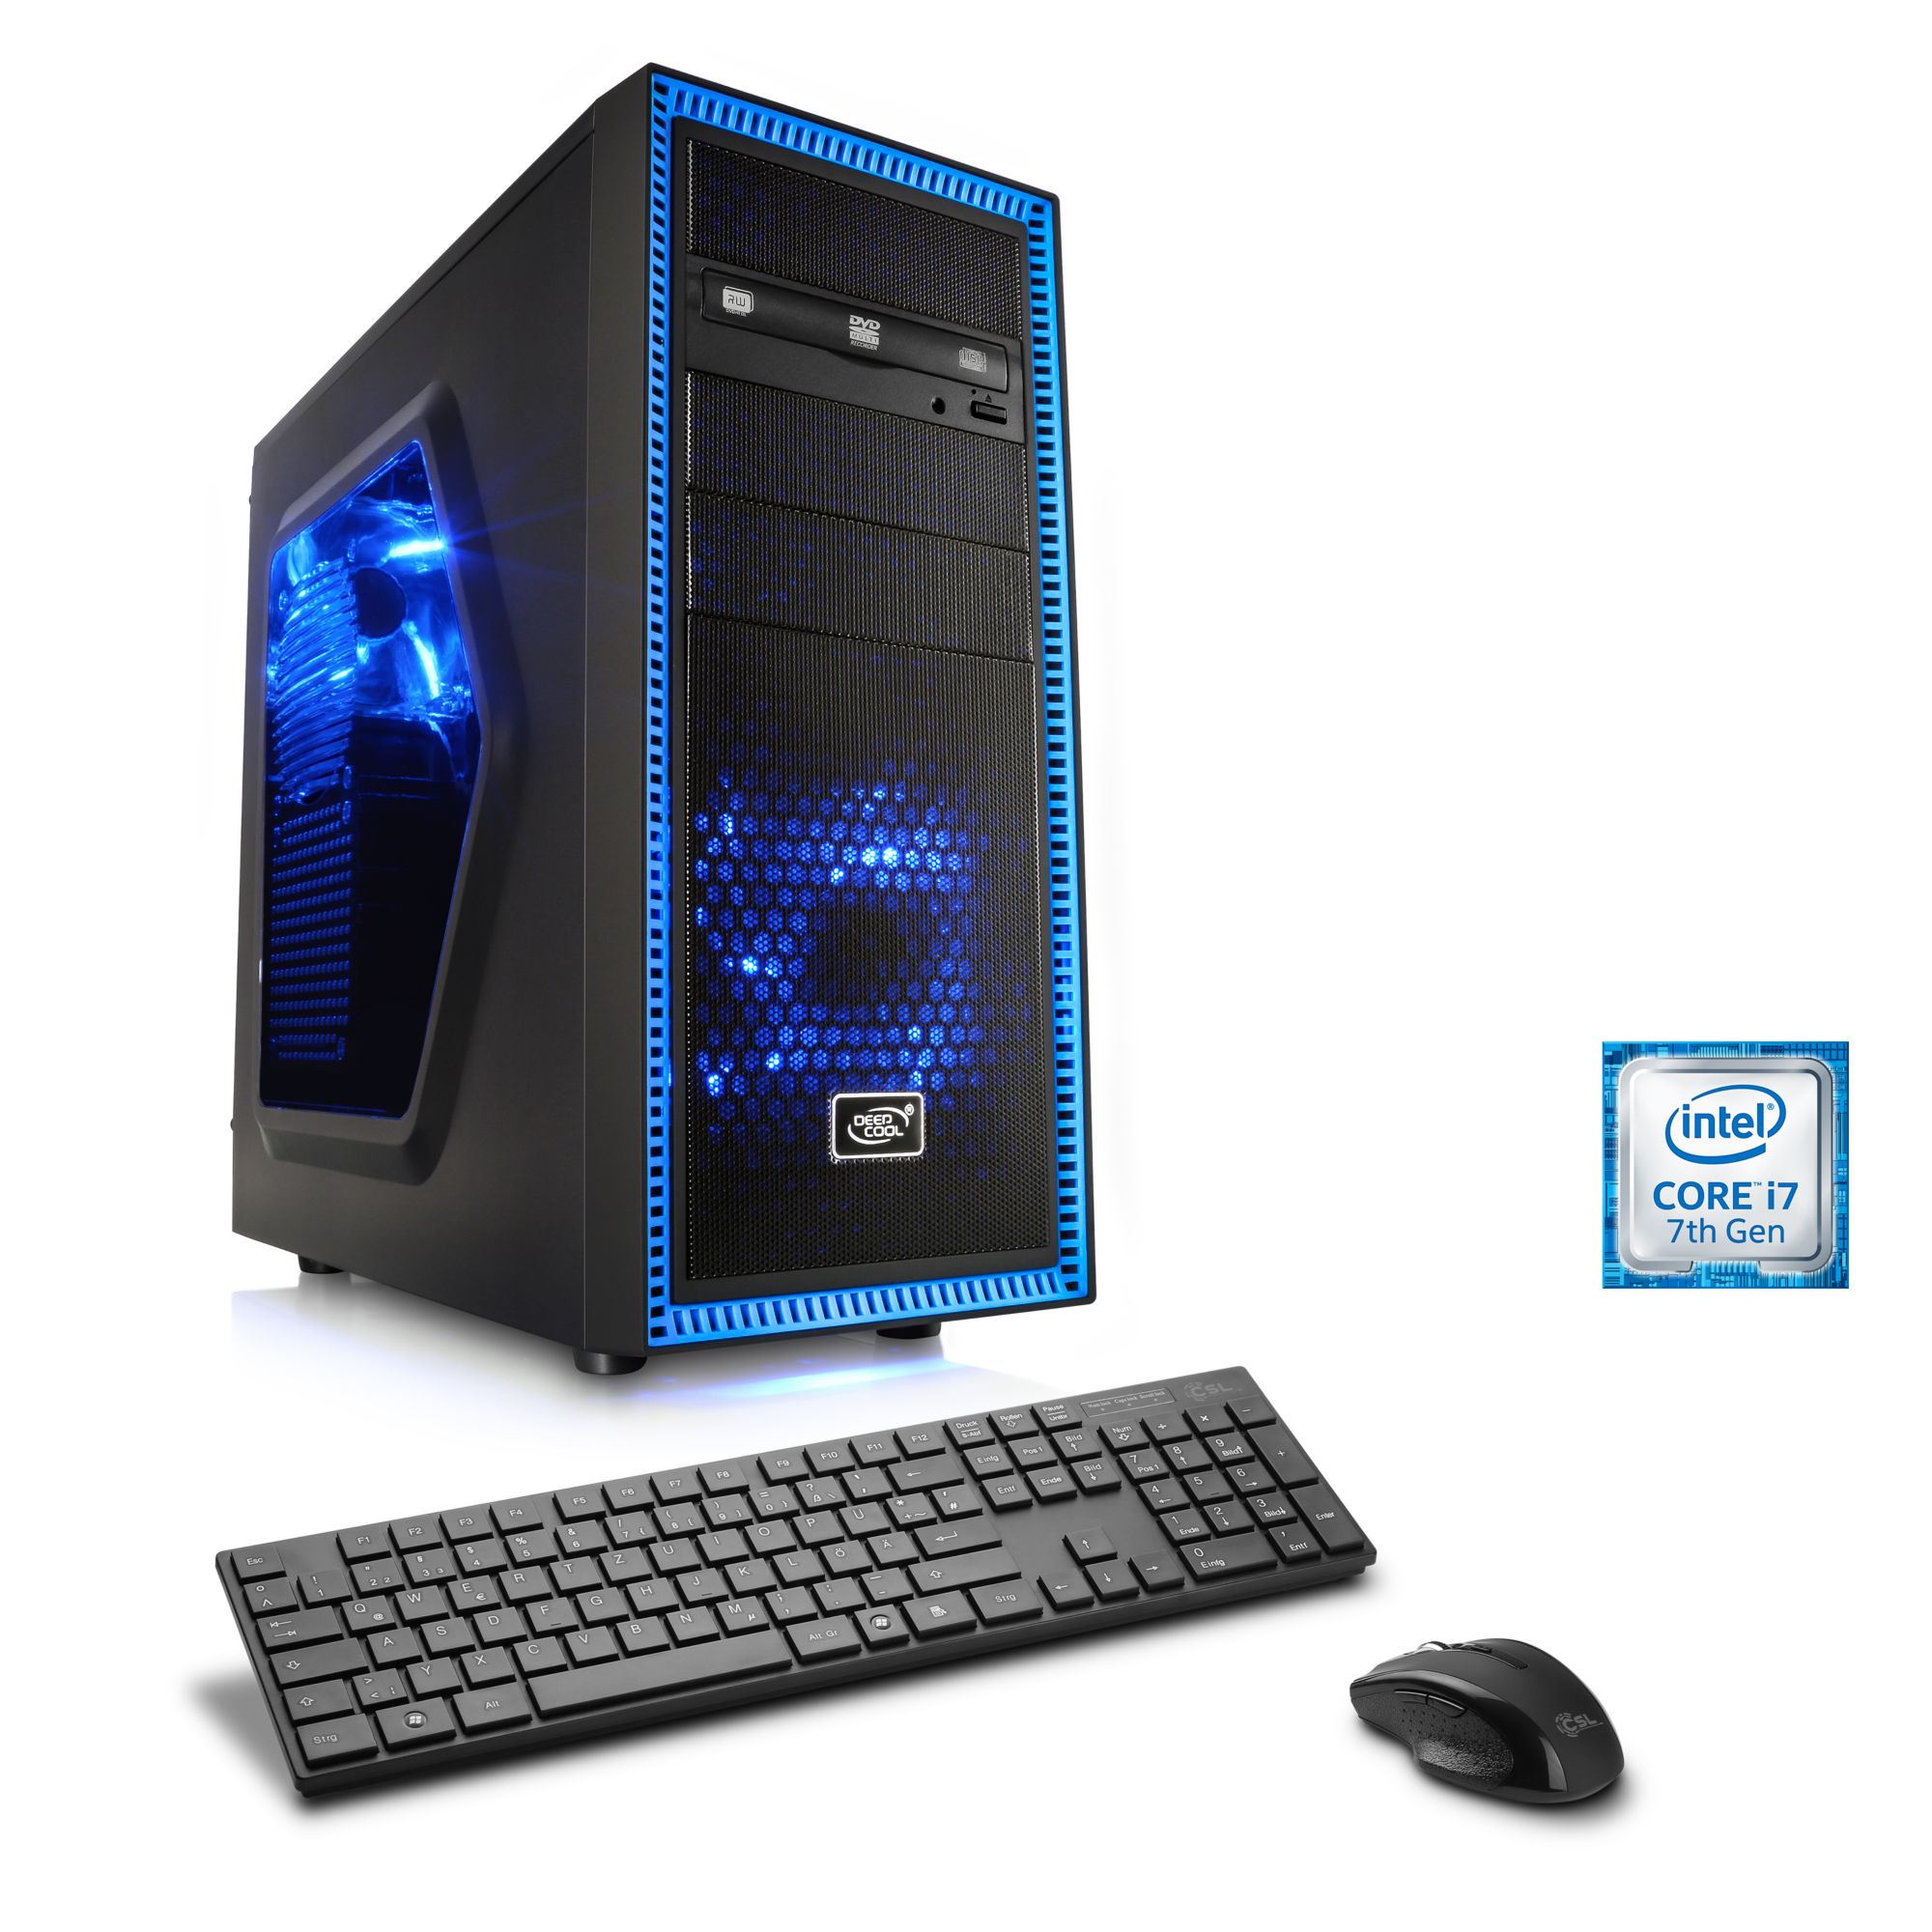 CSL  Extreme Gaming PC | i7-7700 | GTX 1080 | 16GB DDR4 | 240GB SSD »Speed T7593 Windows 10«